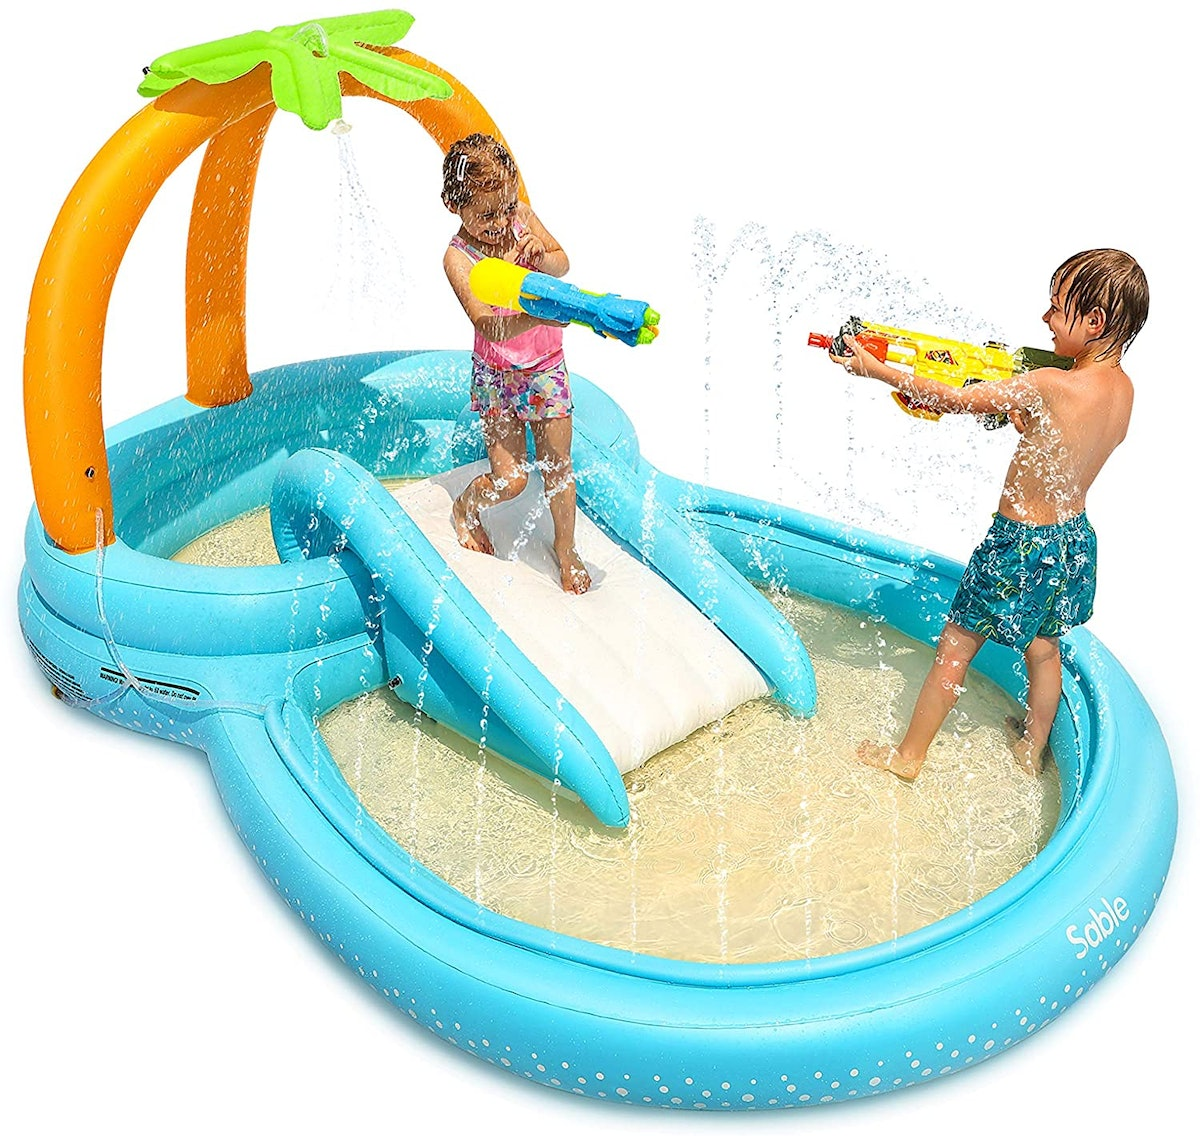 Sable Inflatable Play Center